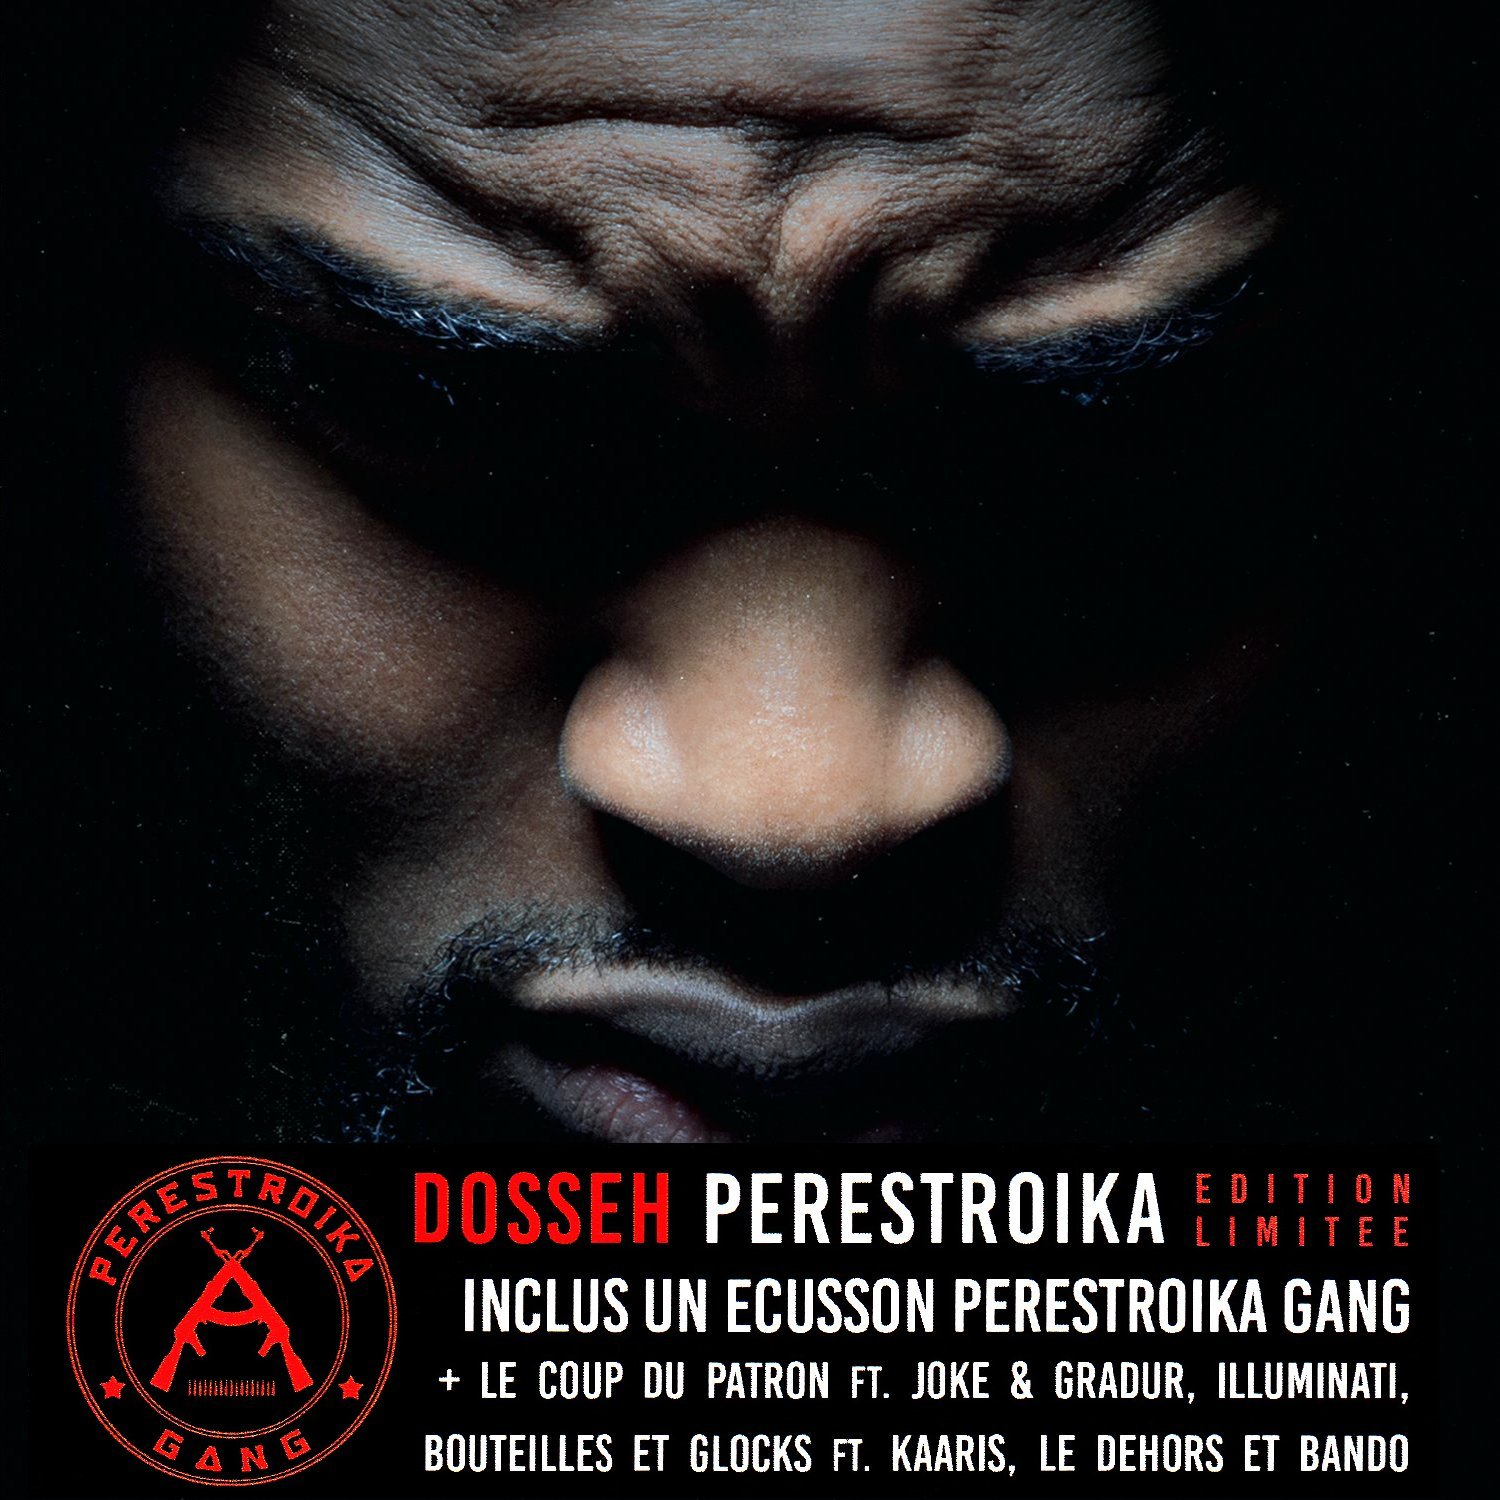 dosseh perestroika